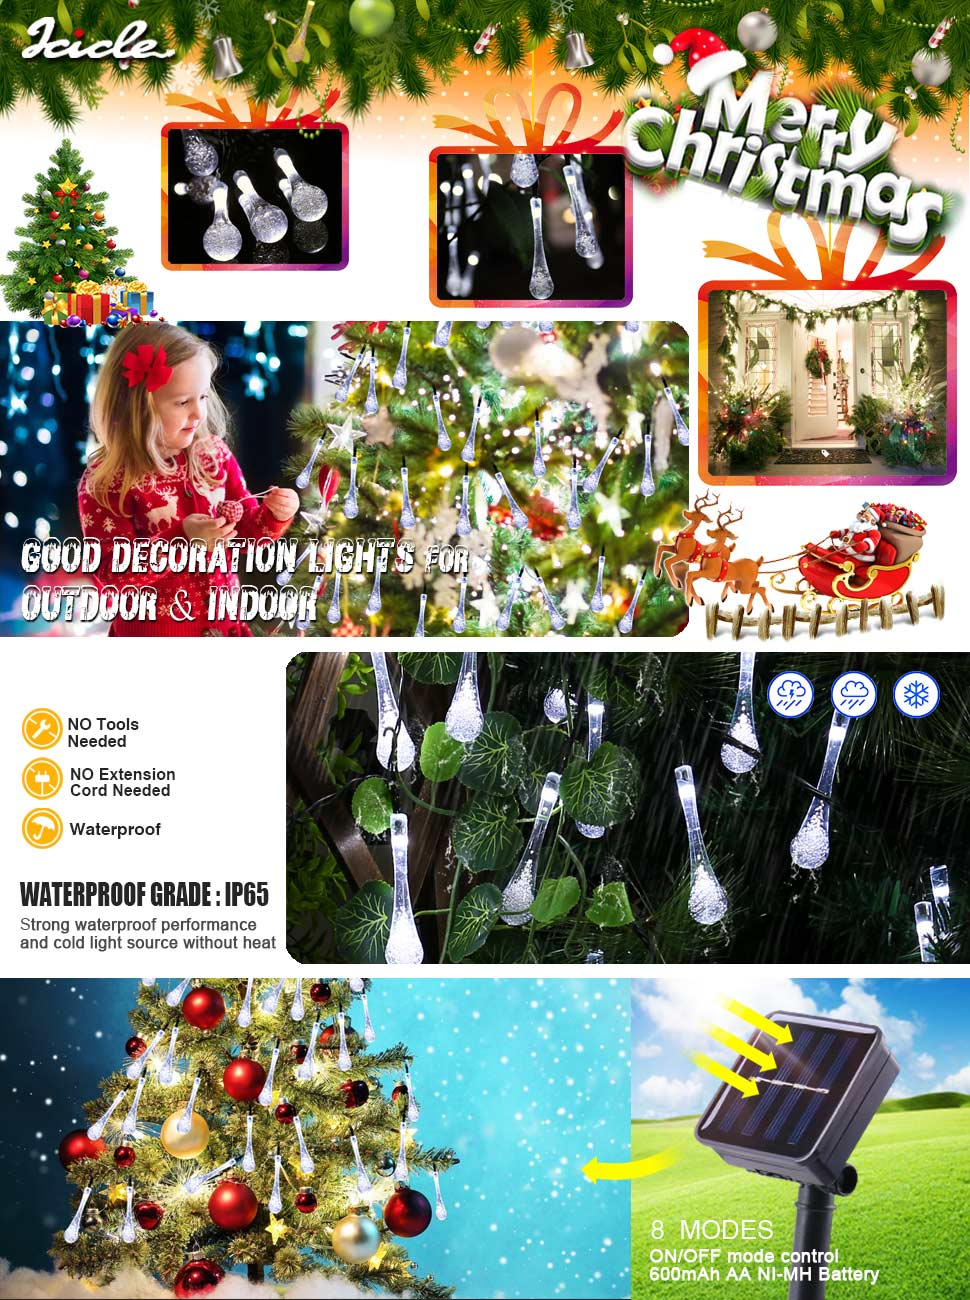 Icicle Solar String Lights 157ft 8 Light Modes 20 Led Water Drop Alternatingcolorledlightstring Ledandlightcircuit Circuit Christmas Best Choice To Decorate Your House Patio Lawn Garden And So On